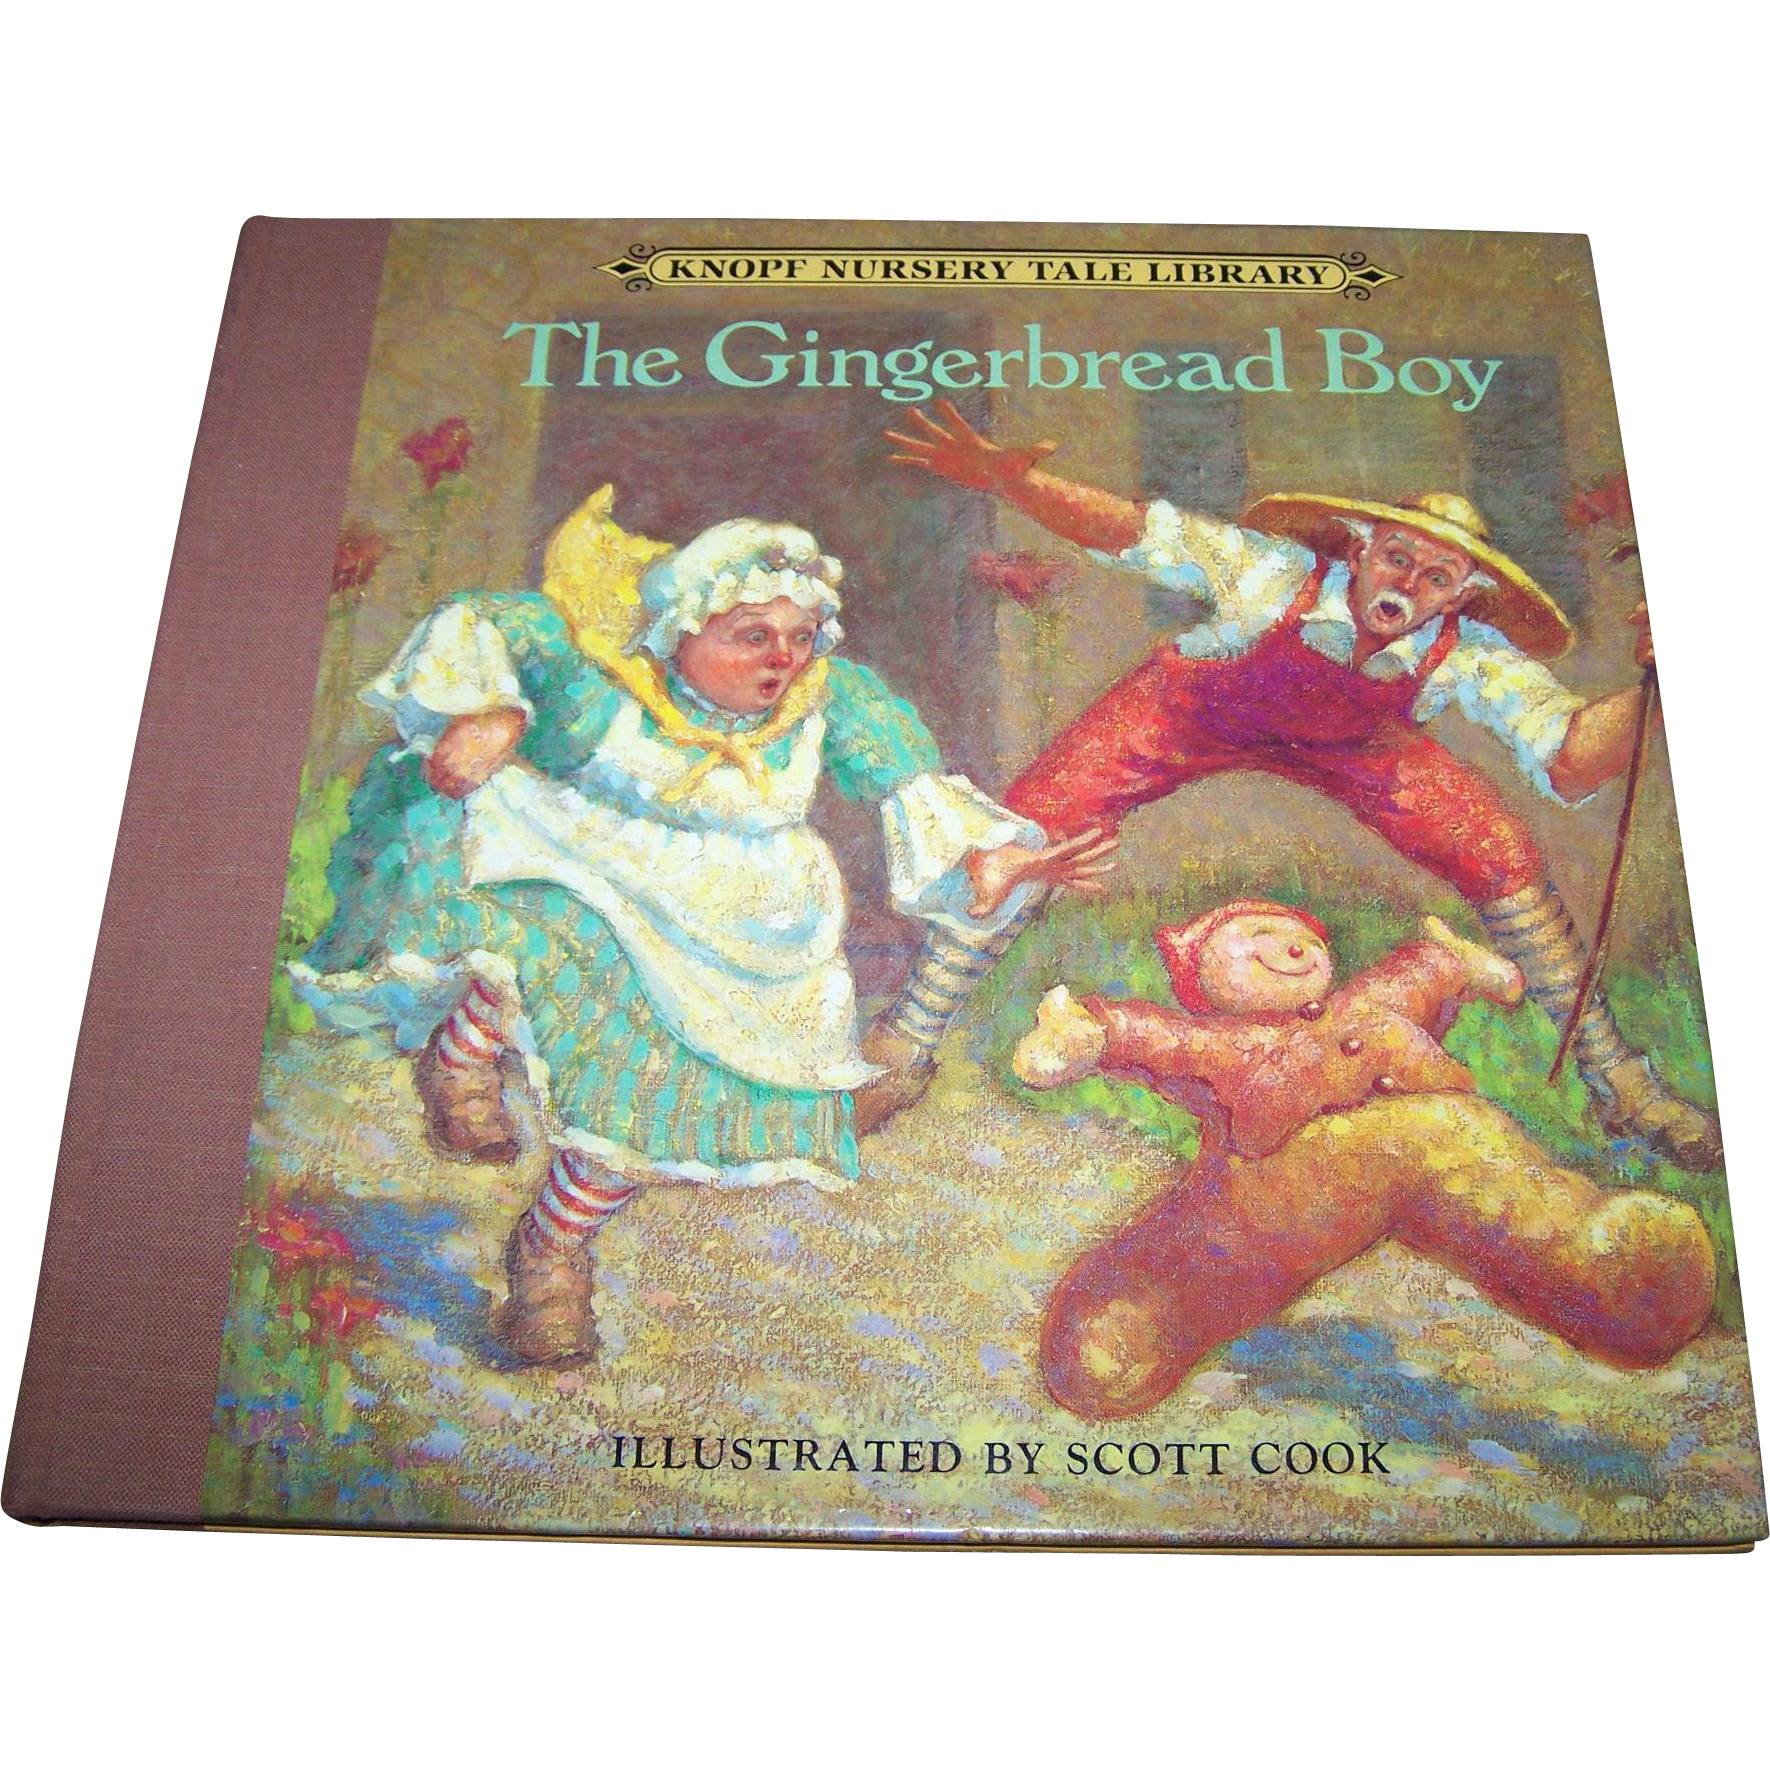 The Gingerbread Boy Knopf  Nursery Tale Library CHildren's Book Illustrated